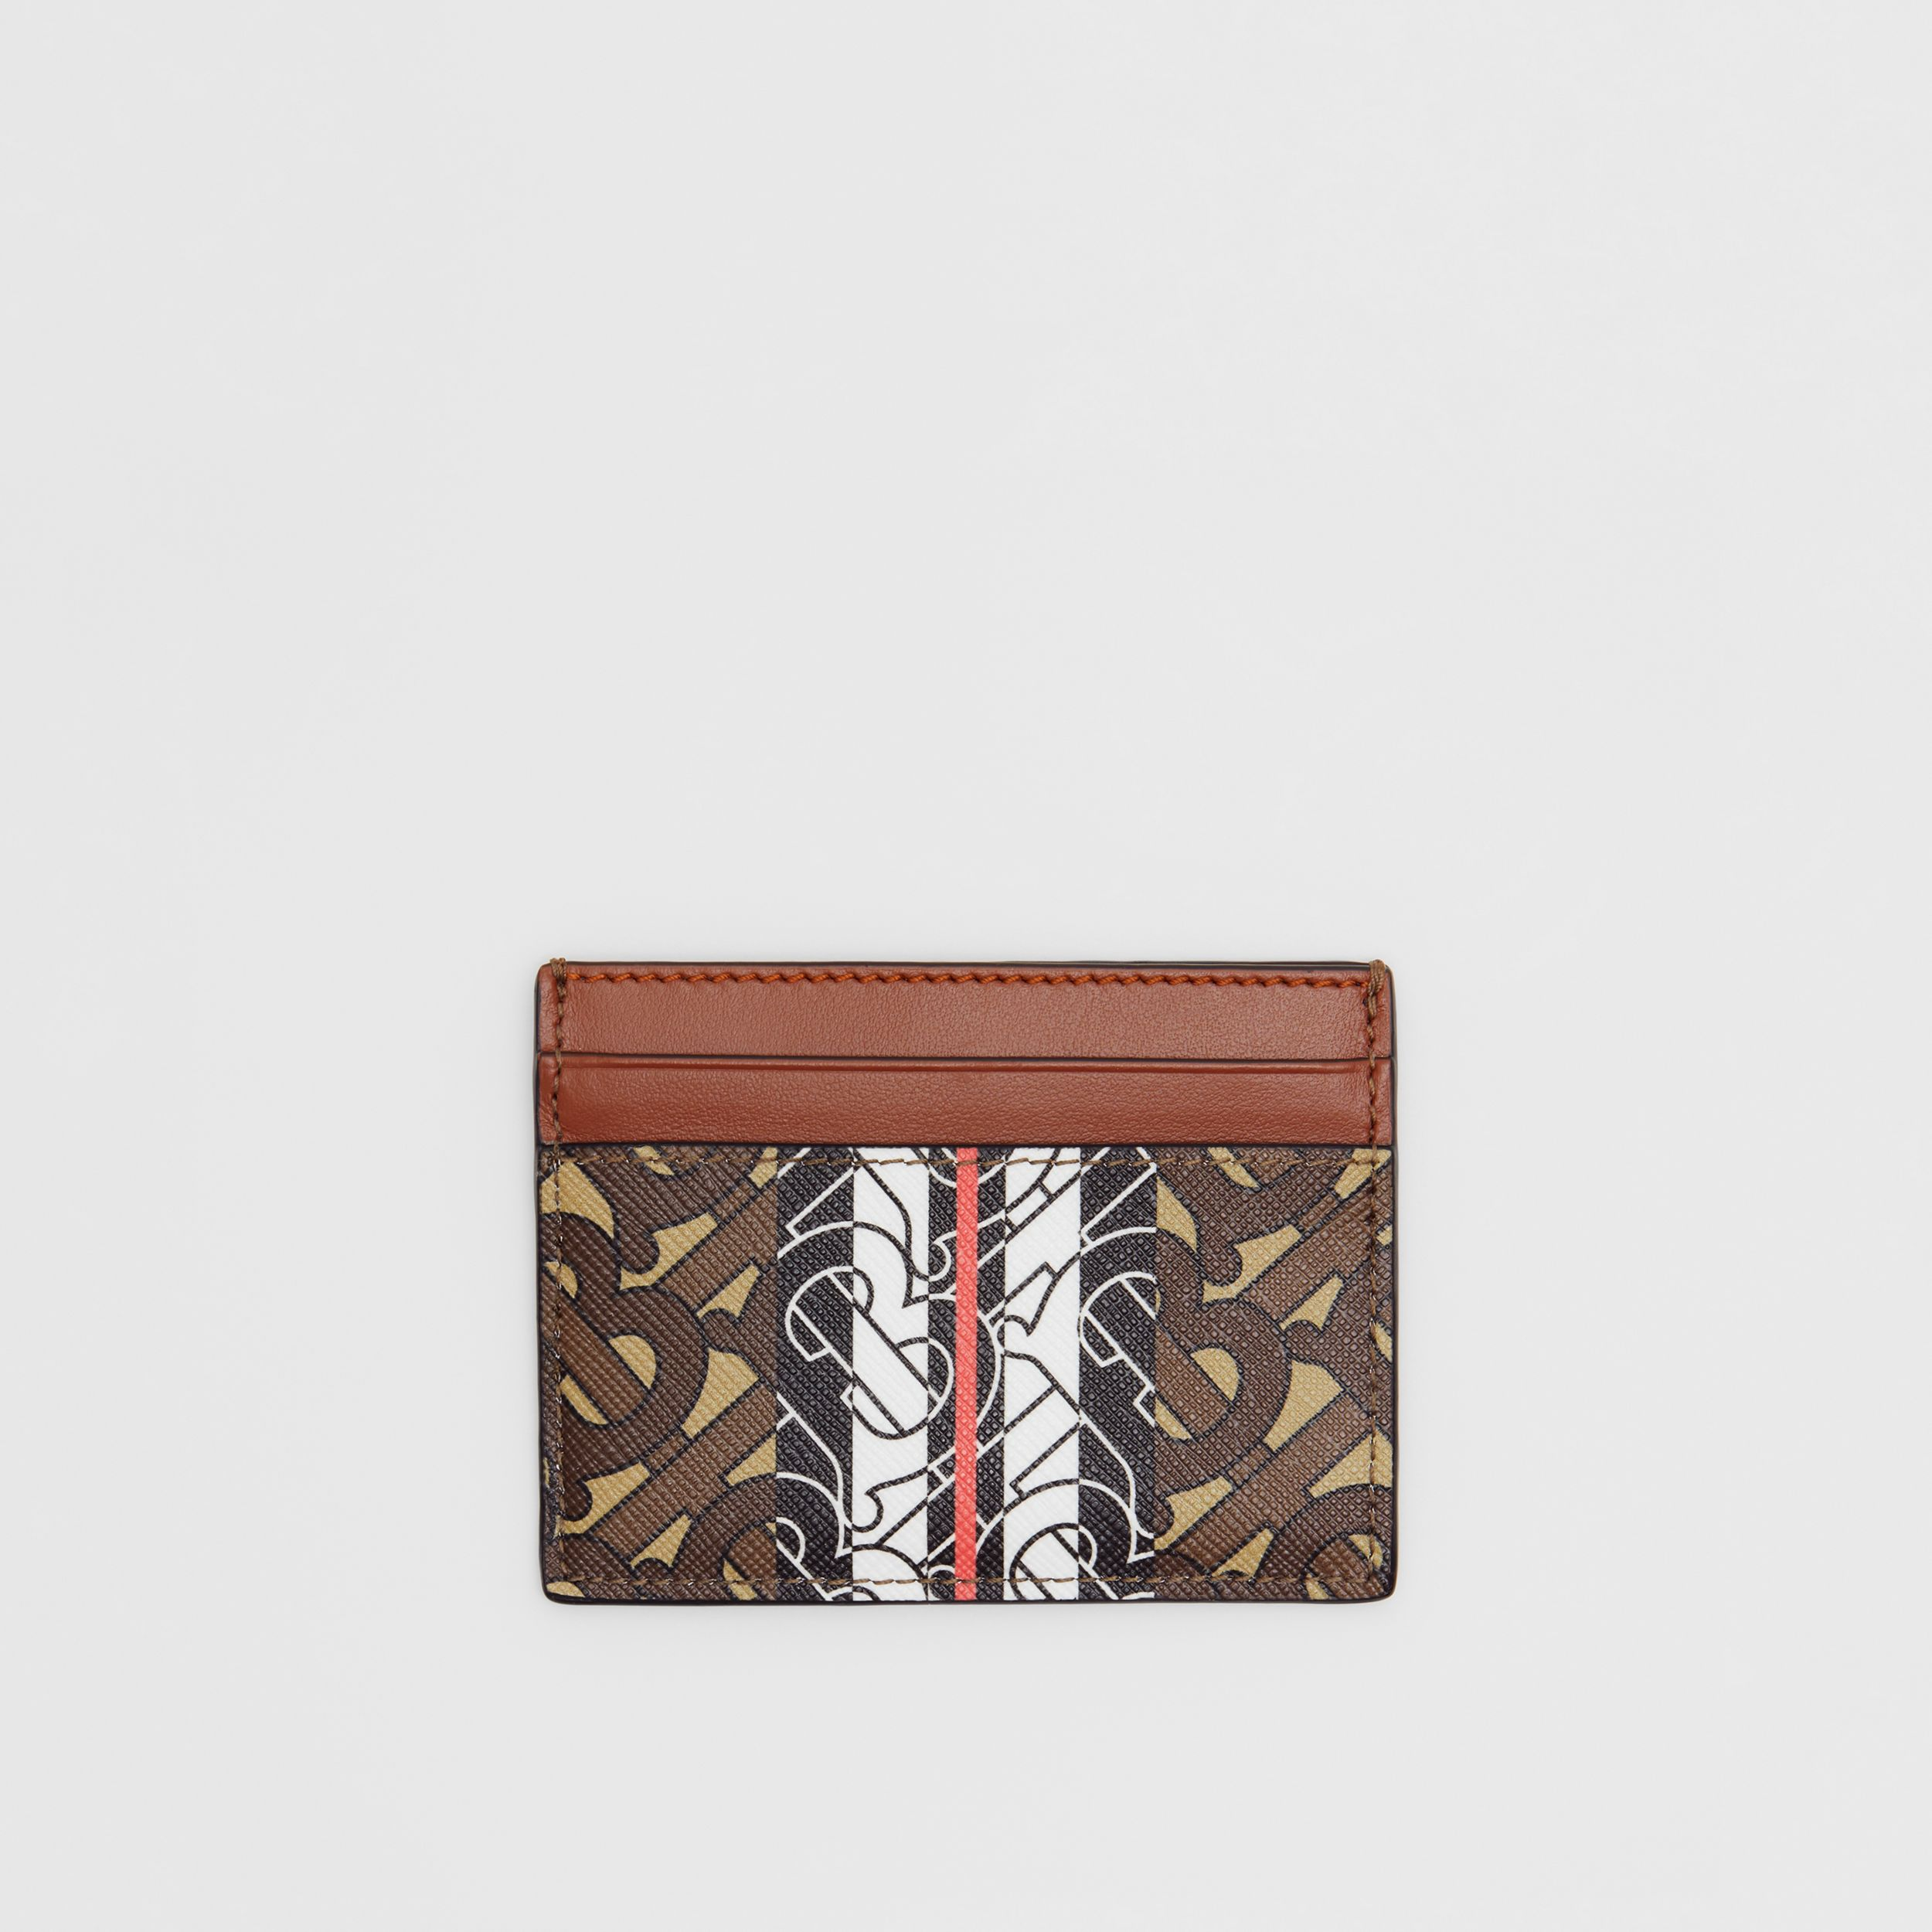 Monogram Stripe E-canvas Card Case in Bridle Brown | Burberry Singapore - 1